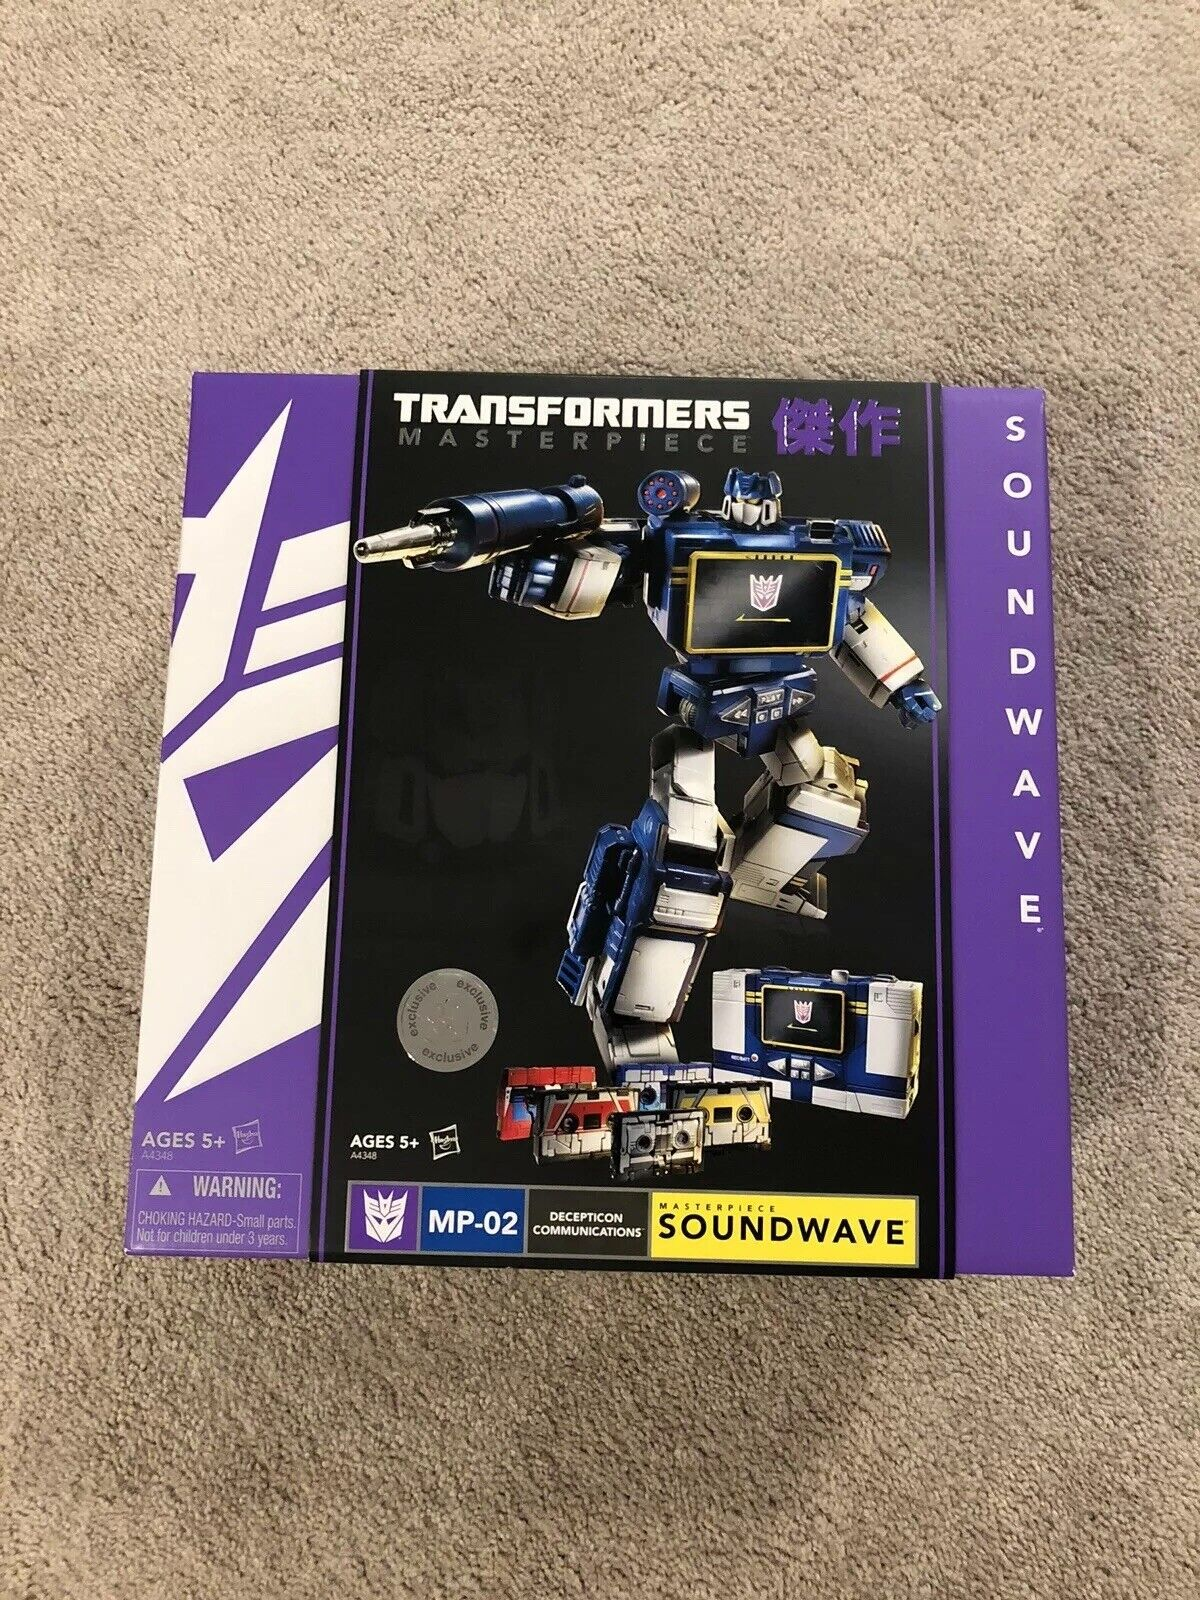 Transformers Masterpiece Soundwave SEALED MP-02 G1 Toys R Us Hasbro 2013